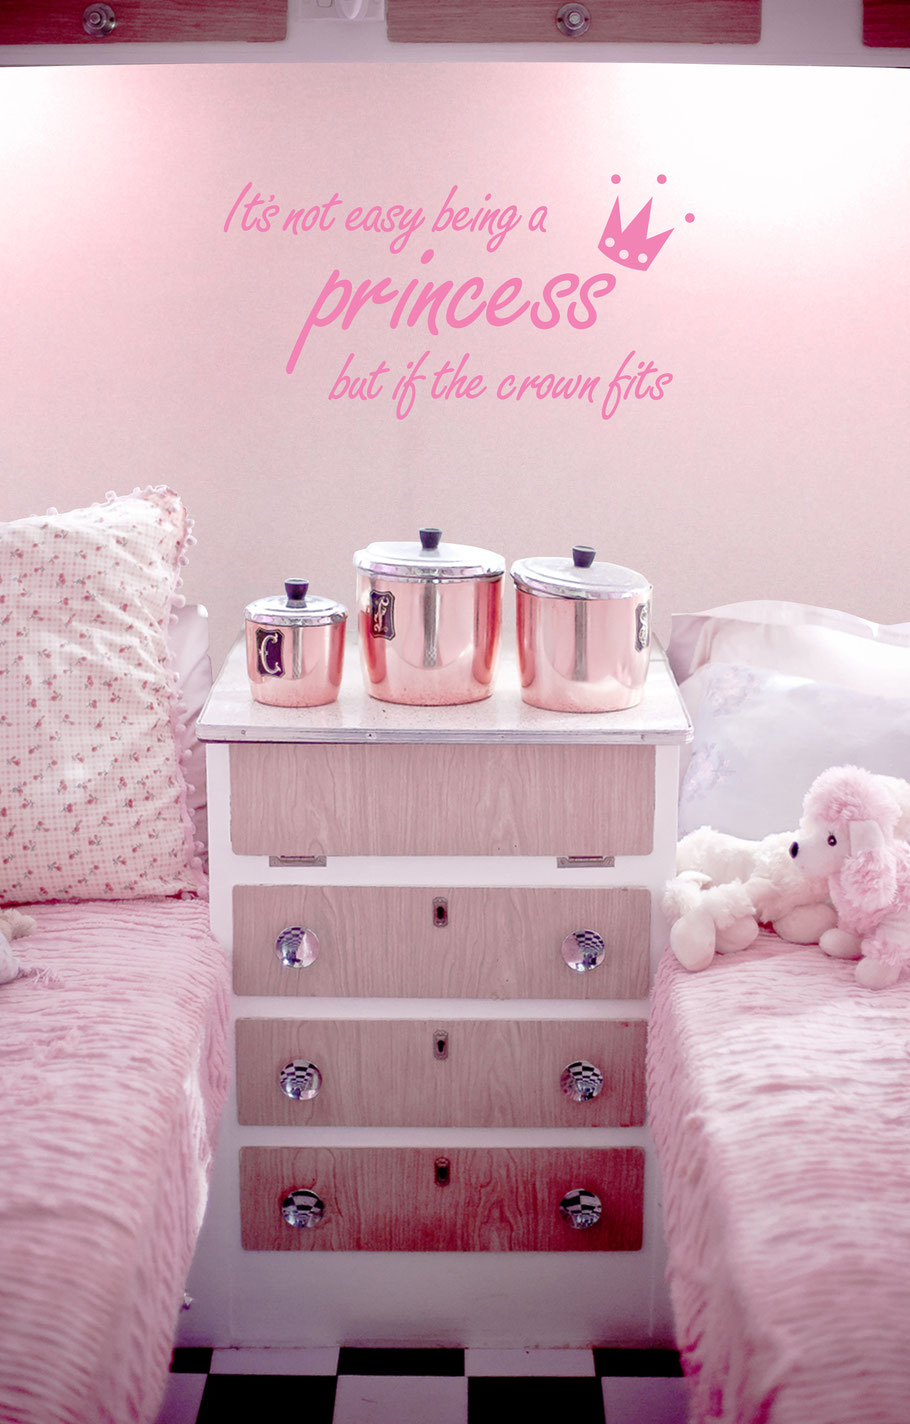 It's not easy being a princess but if the crown fits vinyl sticker in a girls bedroom. The design has a cute little crown hovering over the word princess. This vinyl quote comes in many colours and custom sizes at wallartcompany.co.uk